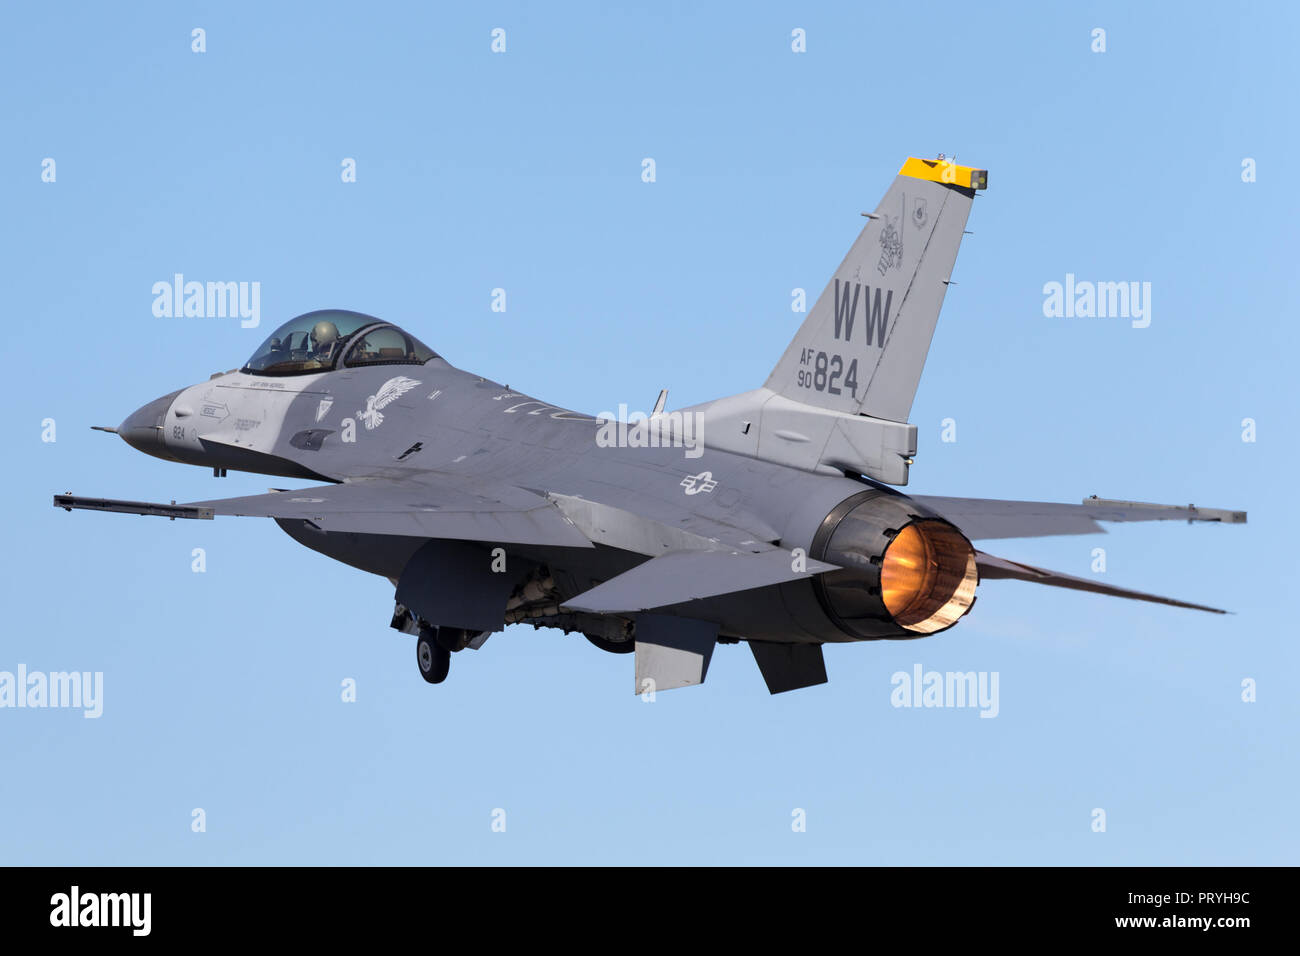 United Staes Air Force (USAF) Lockheed F-16CJ Fighting Falcon 90-0824 from the 14th Fighter Squadron, 35th Fighter Wing at Misawa Air Base, Japan. - Stock Image